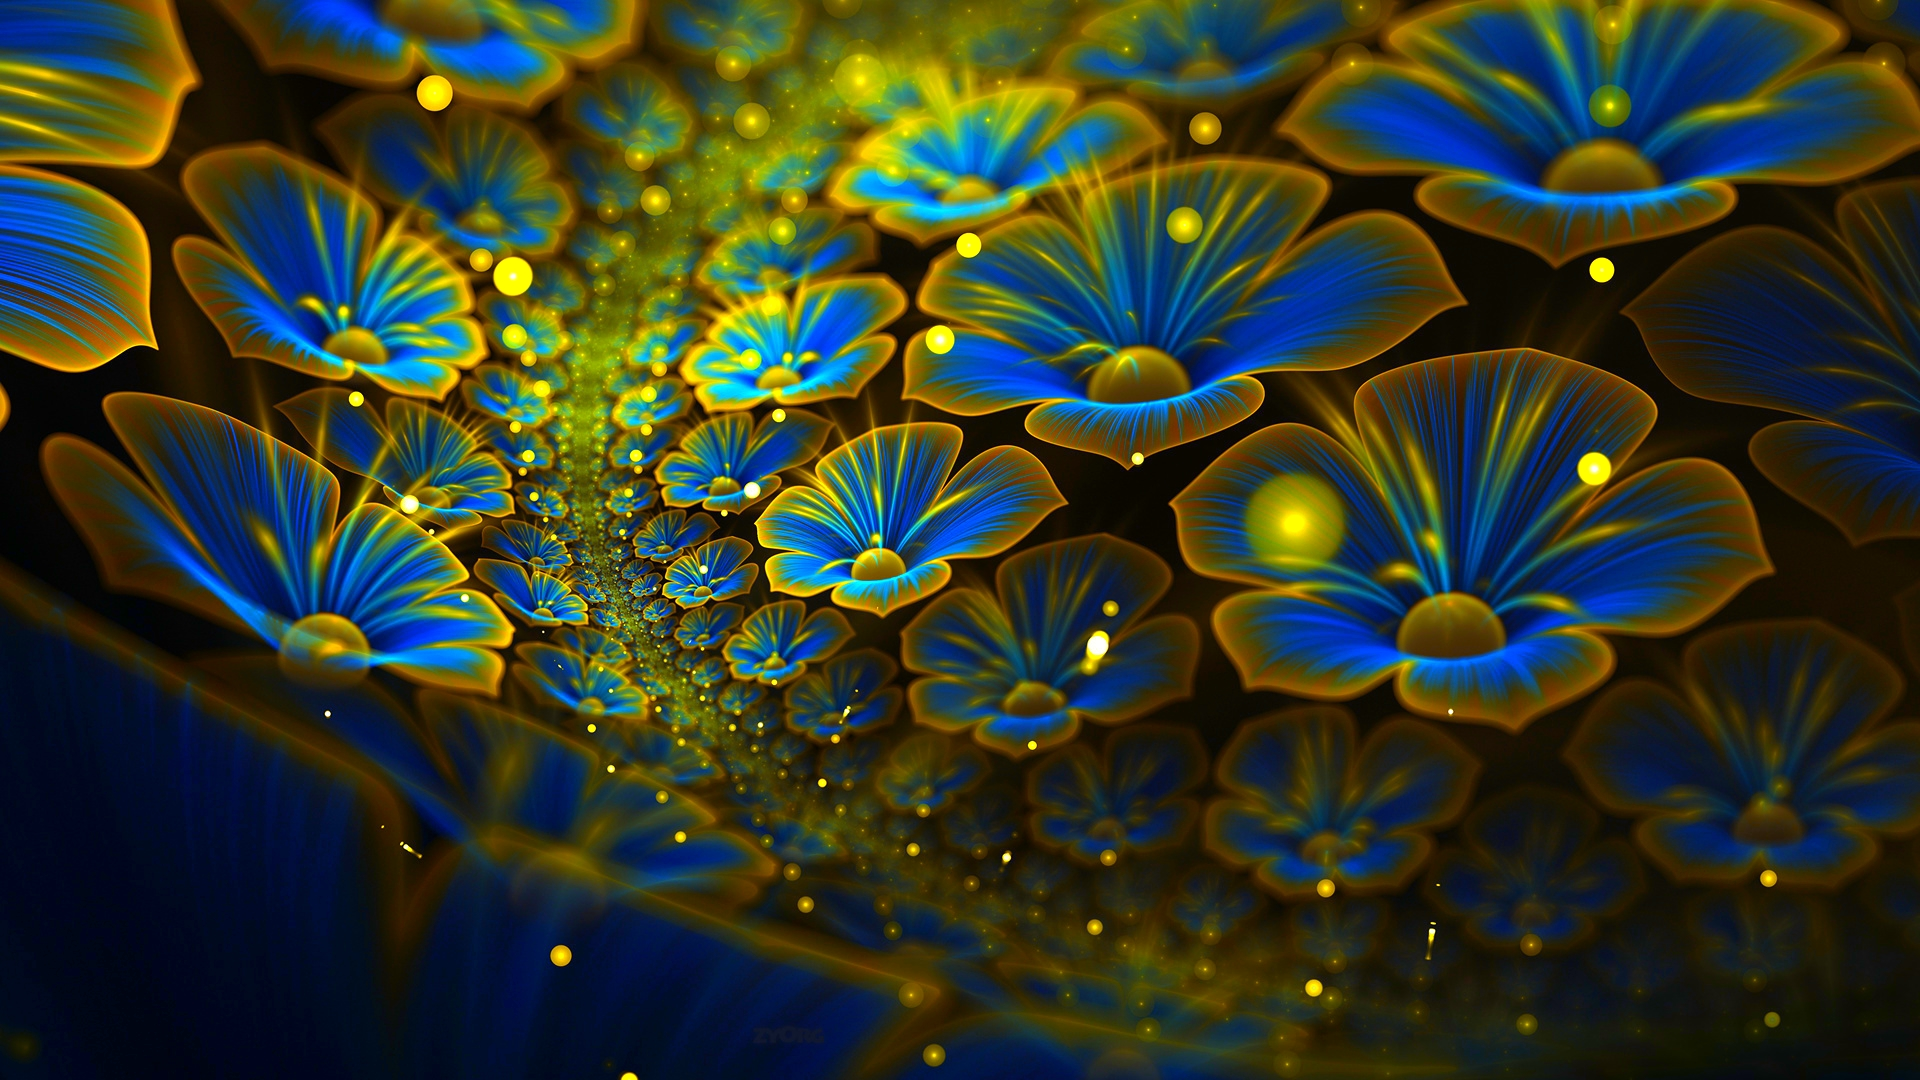 Abstract Anime Nature Wallpaper 1920 X 1080 Wallpaper